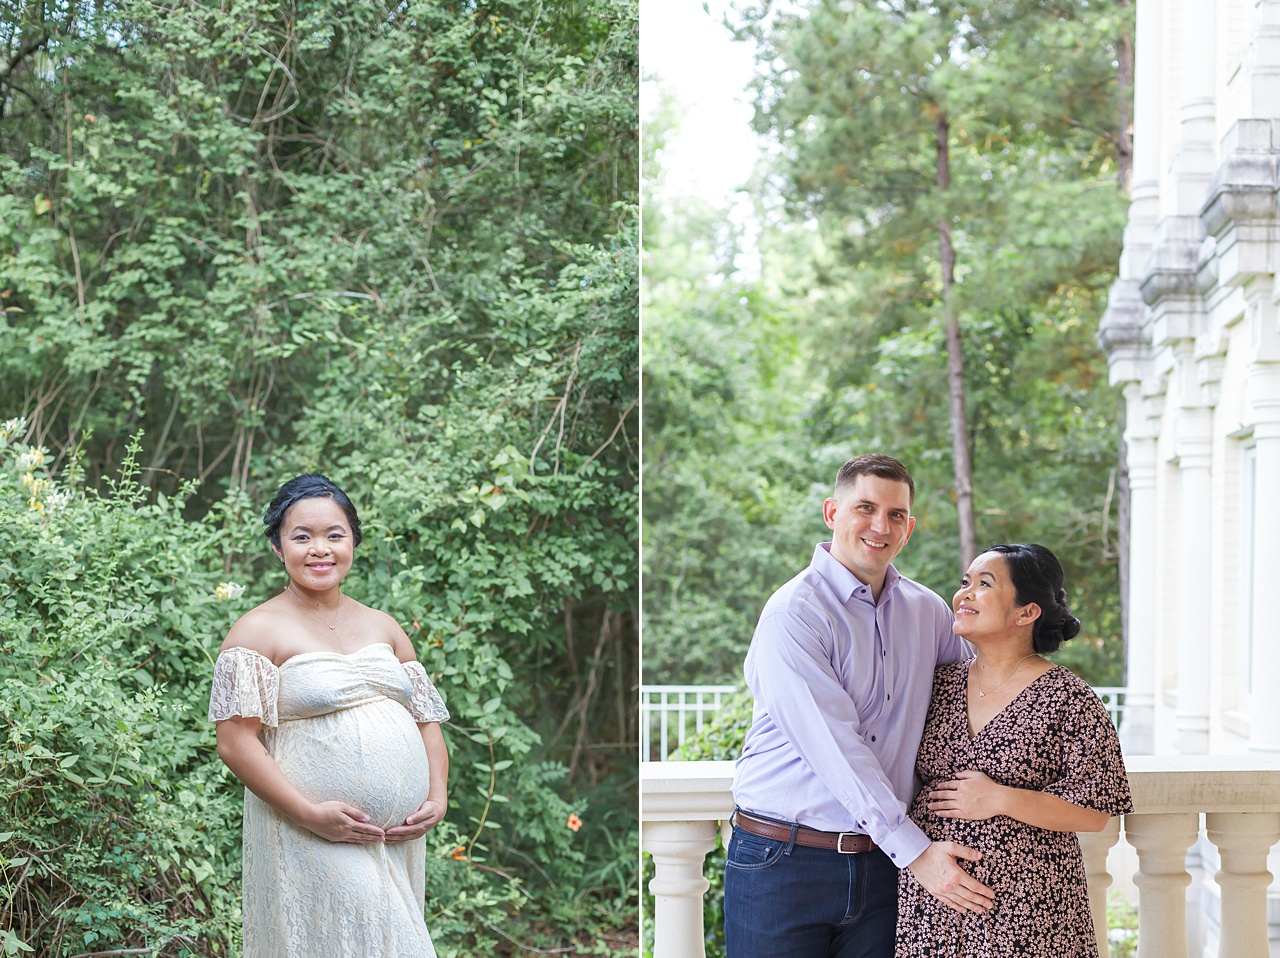 beautiful couples photography session celebrating pregnancy in the woodlands texas